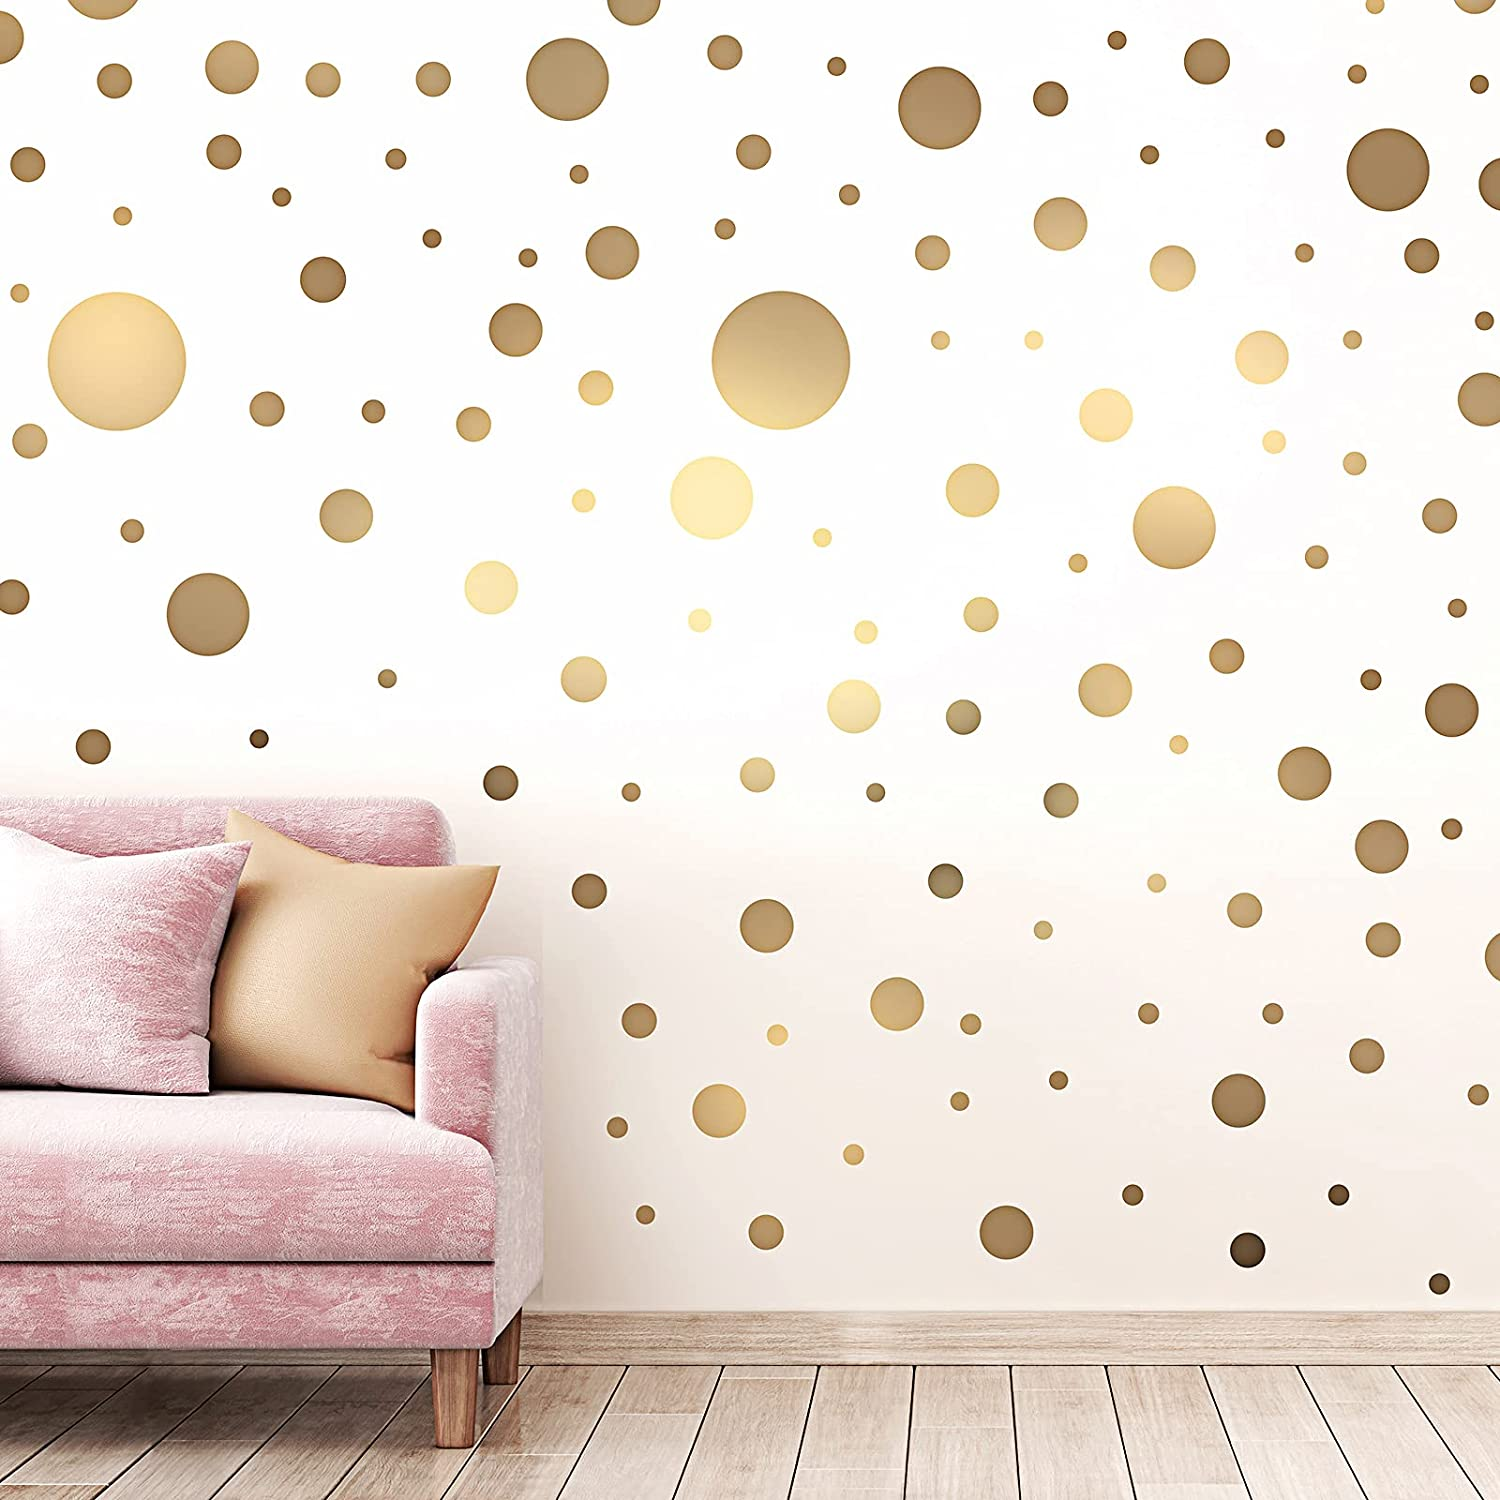 264 Pieces Polka Dots Year-end annual account Ranking TOP18 Wall Sticker Circle Be for Decal Kids